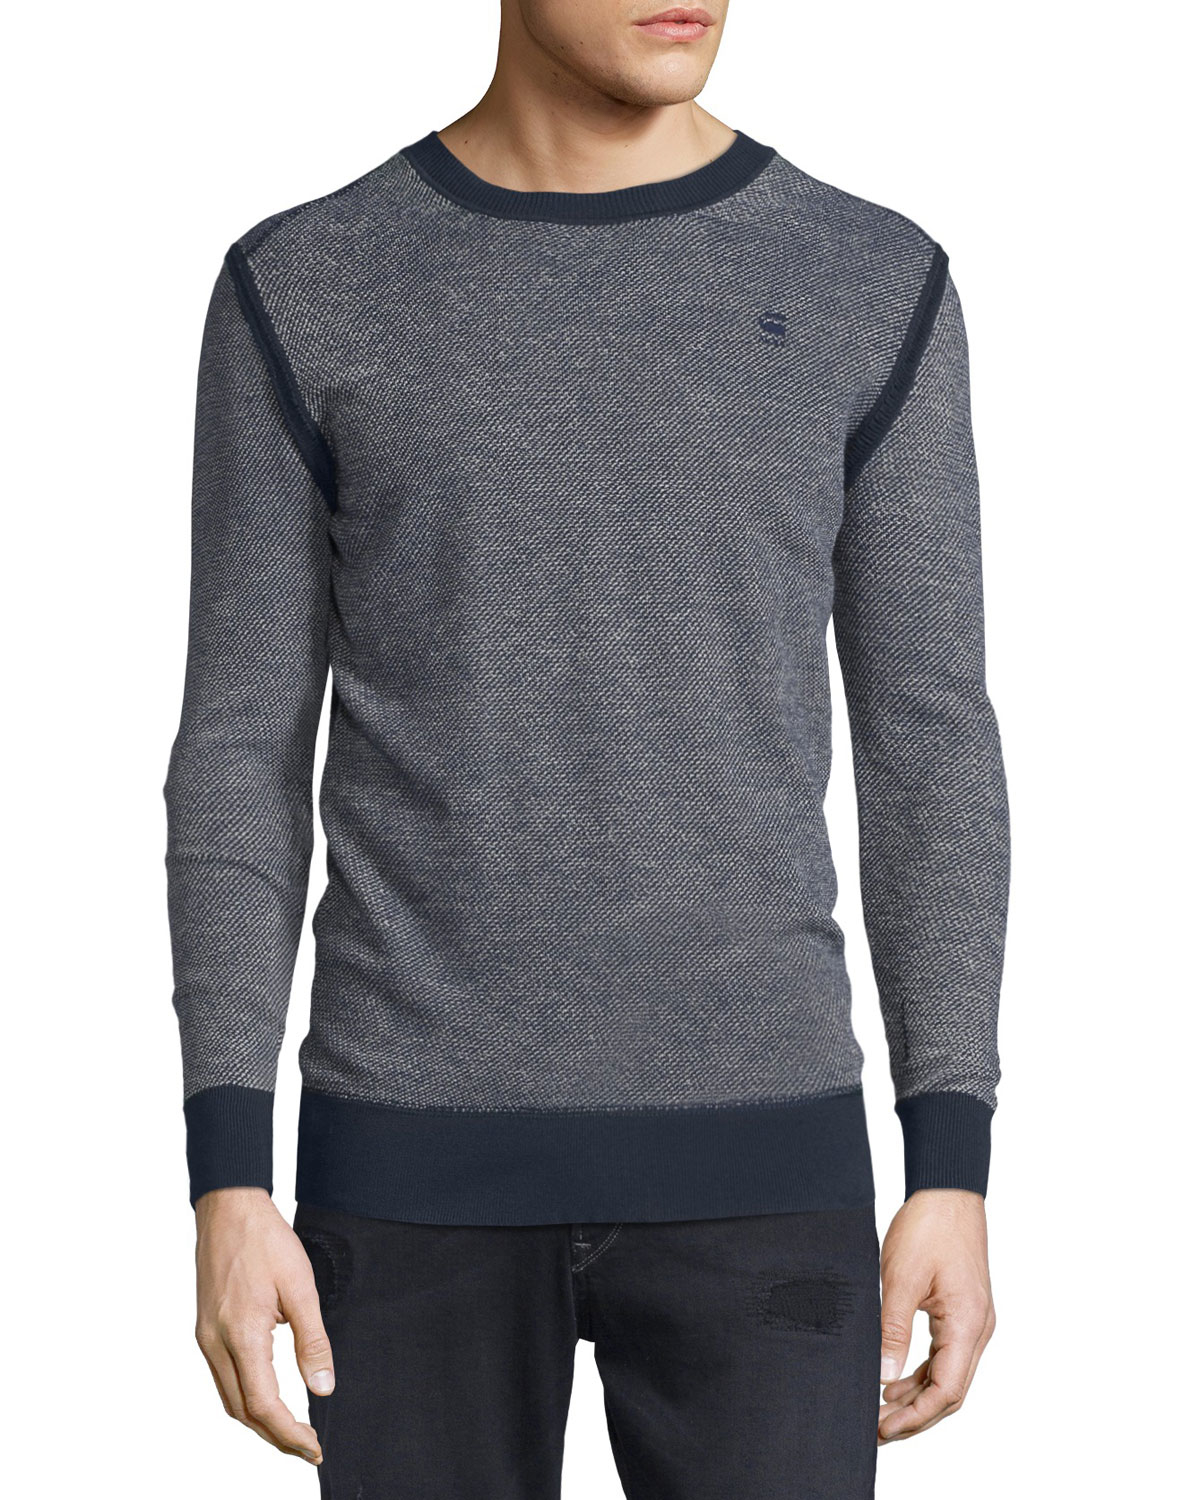 g star raw dimder textured knit crewneck sweater in gray. Black Bedroom Furniture Sets. Home Design Ideas